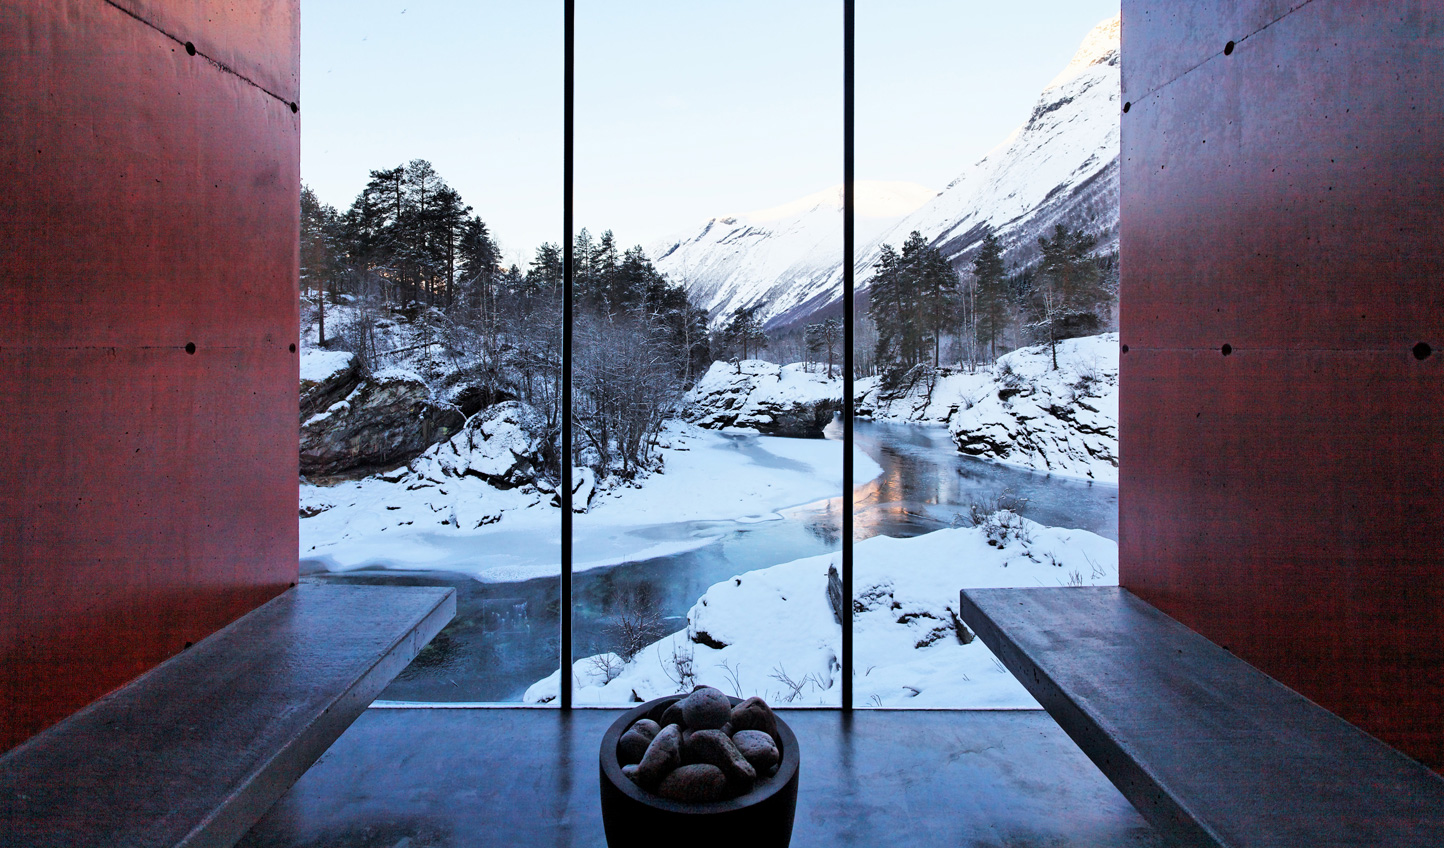 Warm up in the spa with wintry views beyond